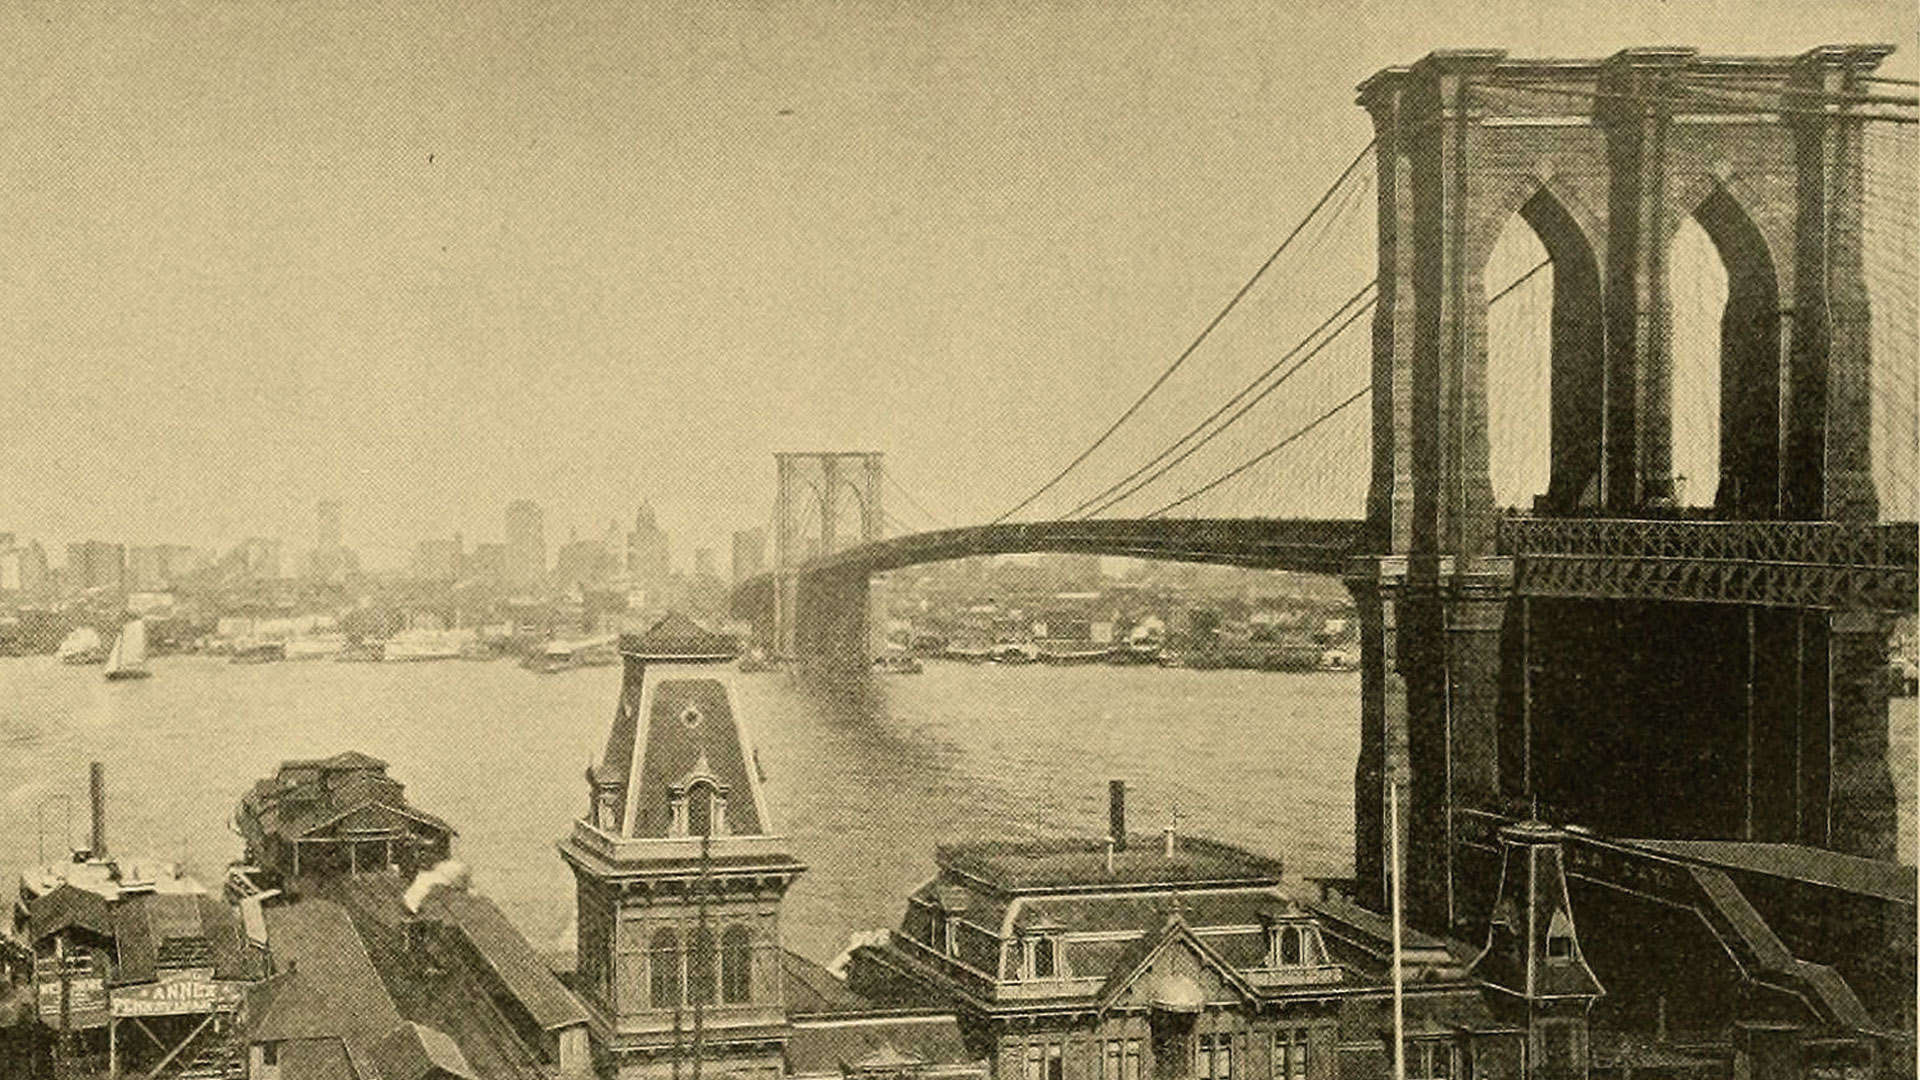 vintage photo of the brooklyn bridge